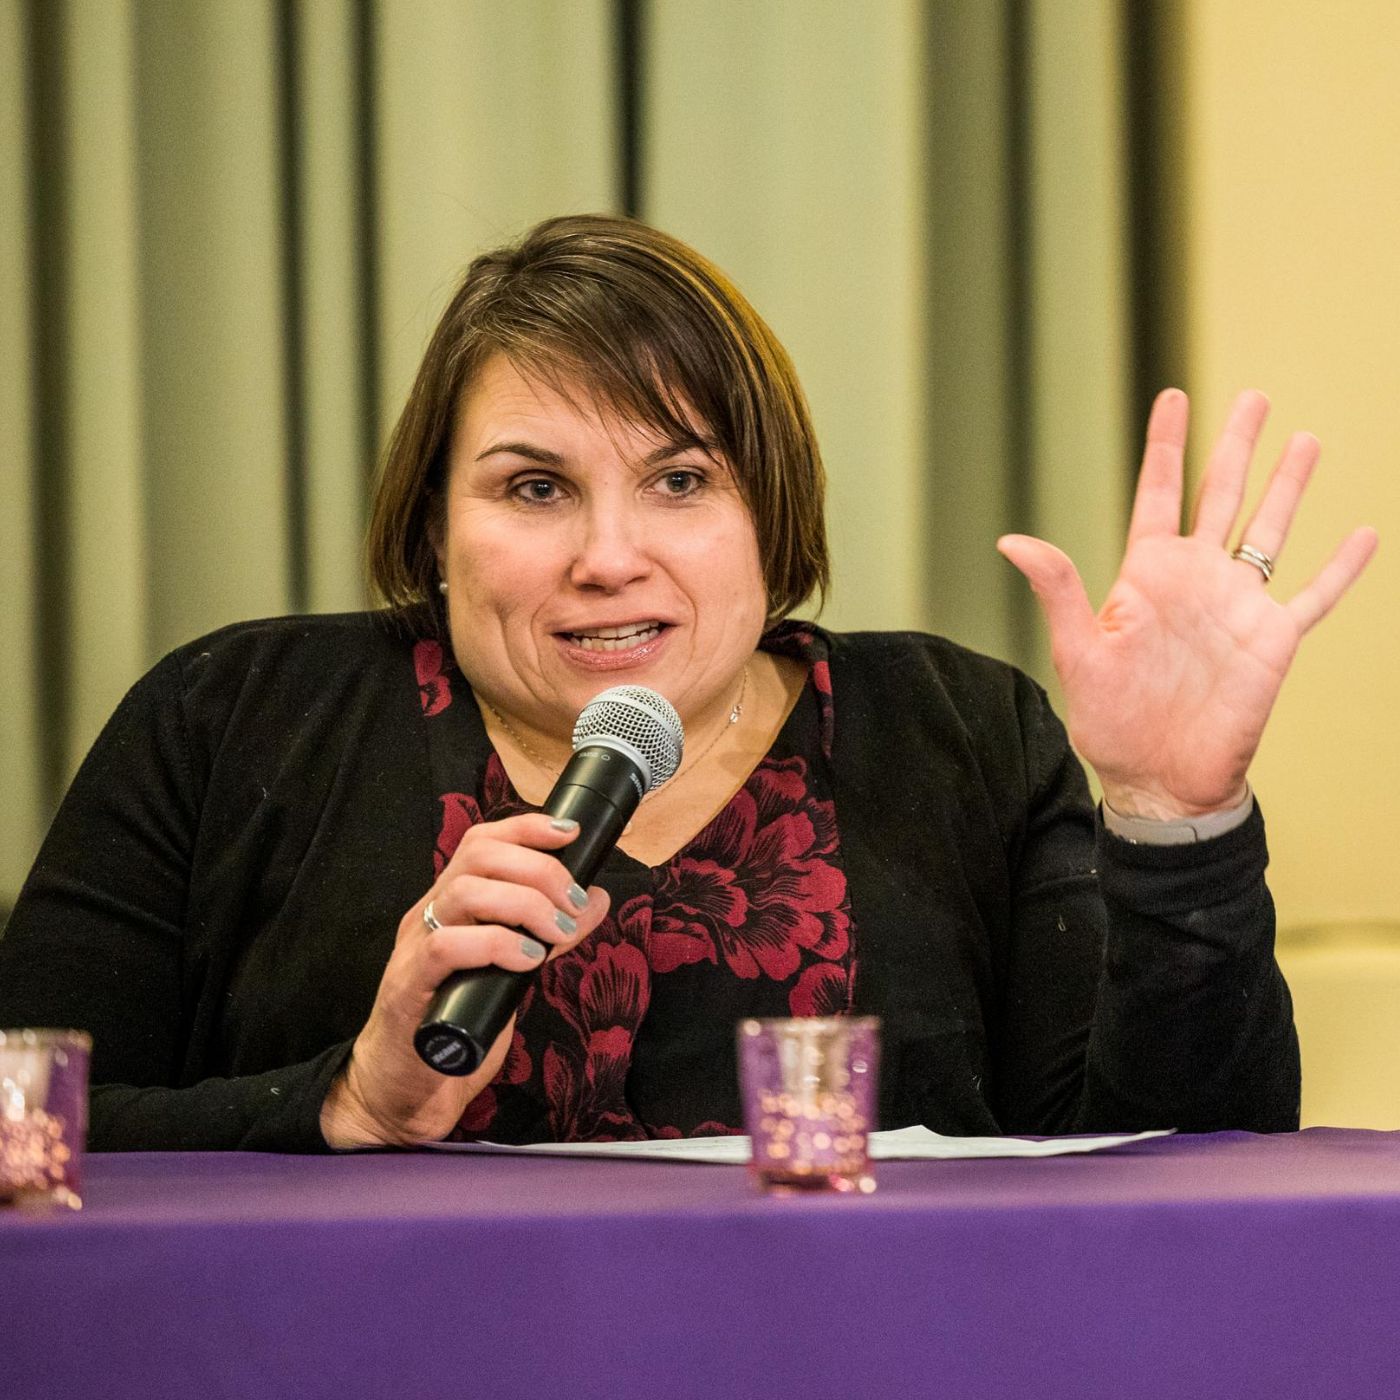 Karen speaks into a microphone, her left hand gesturing outward. Her hair is short, brown. Red floral blouse, black cardigan.